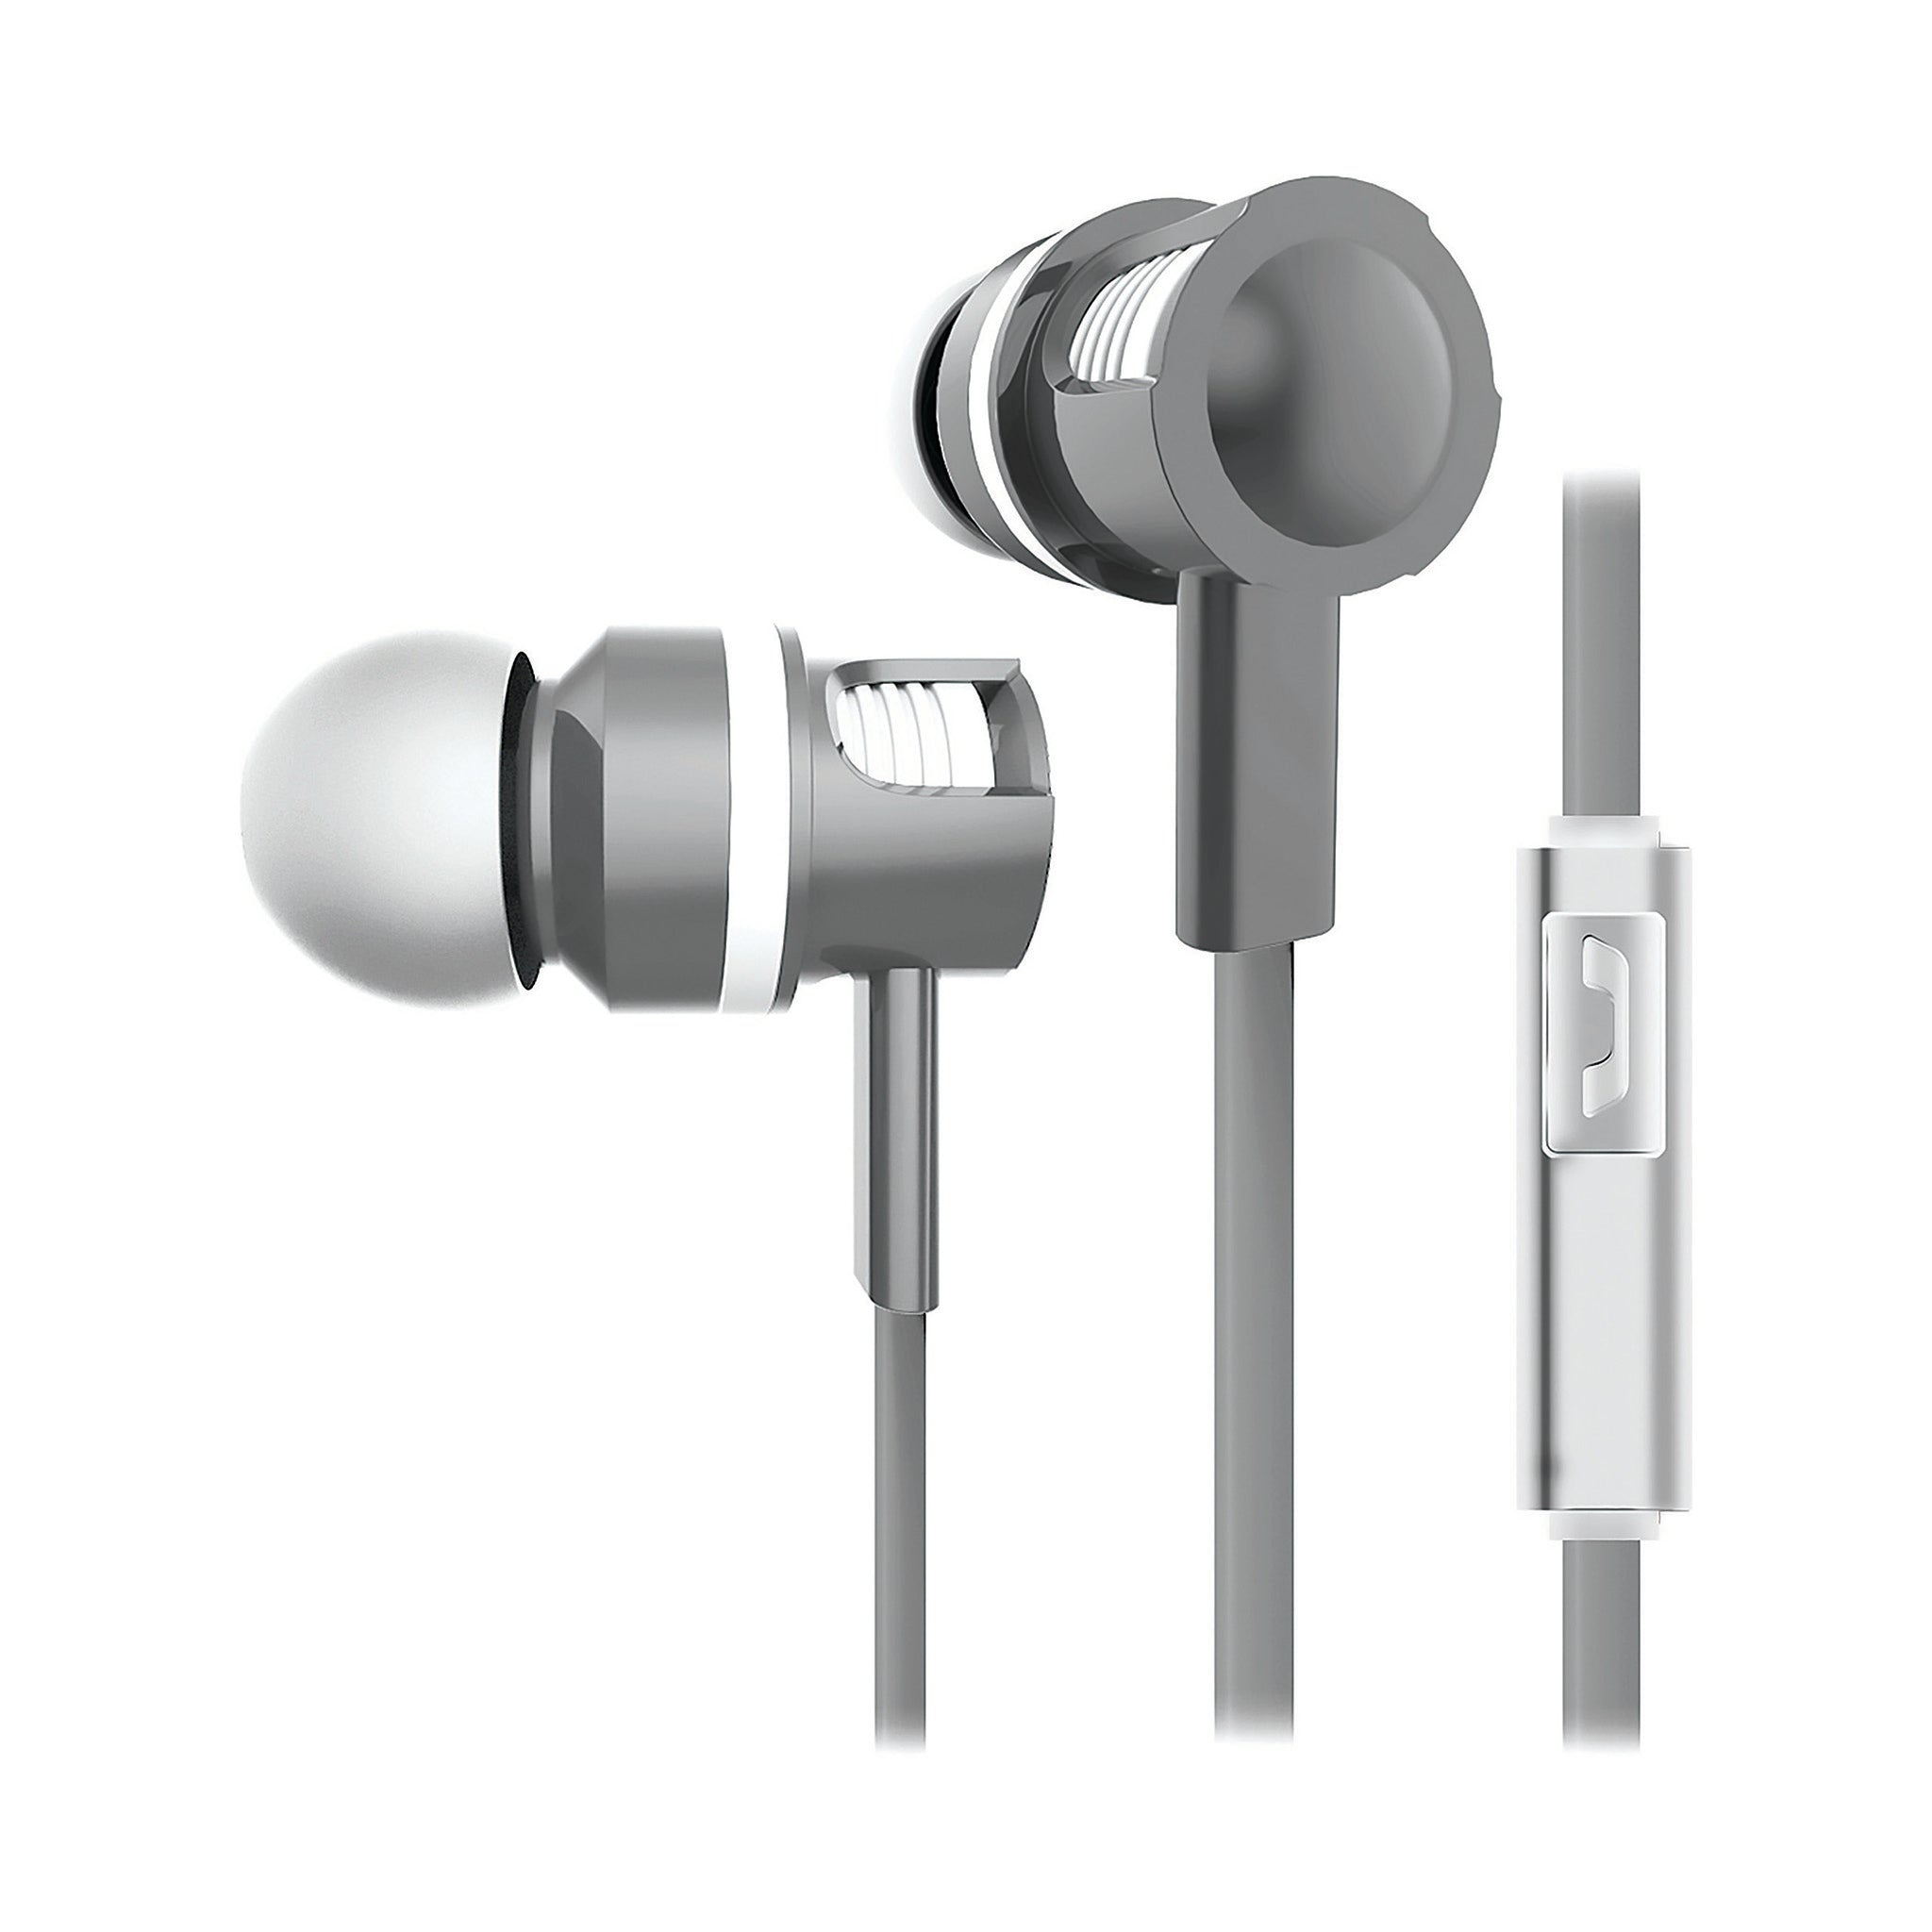 VOLTX Stereo Earbuds